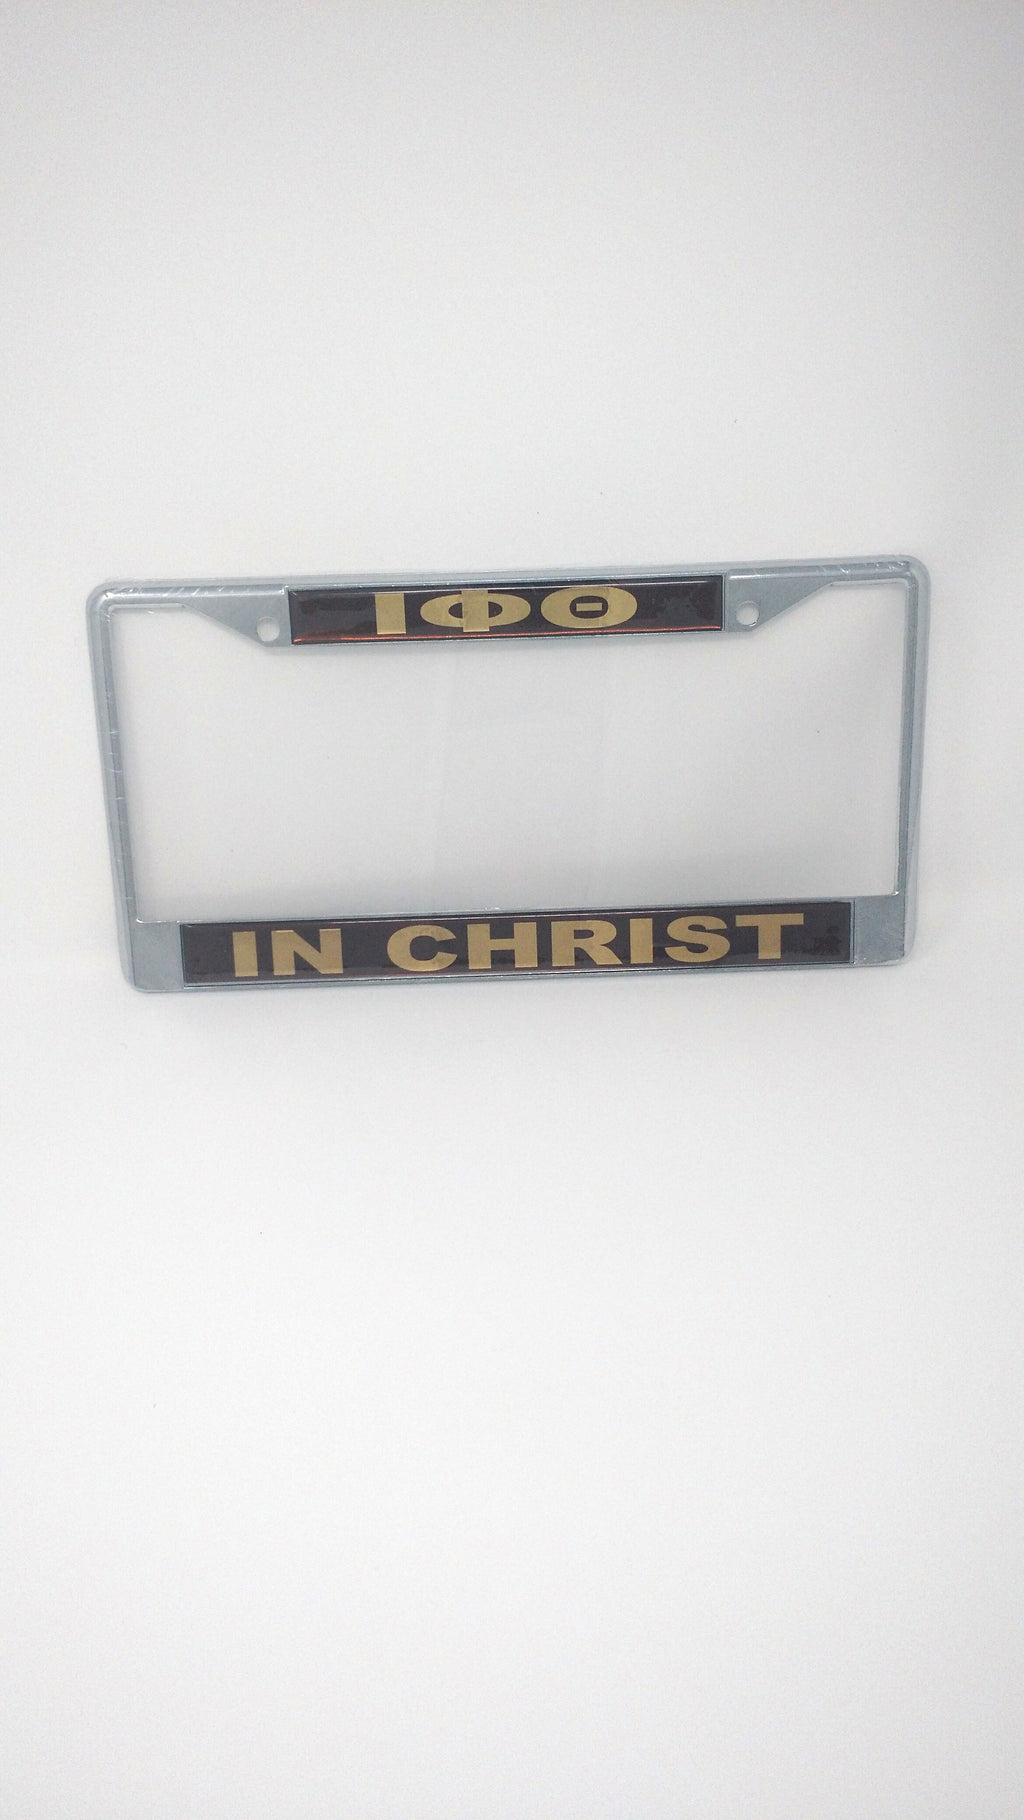 Iota Phi Theta In Christ License Plate Frame